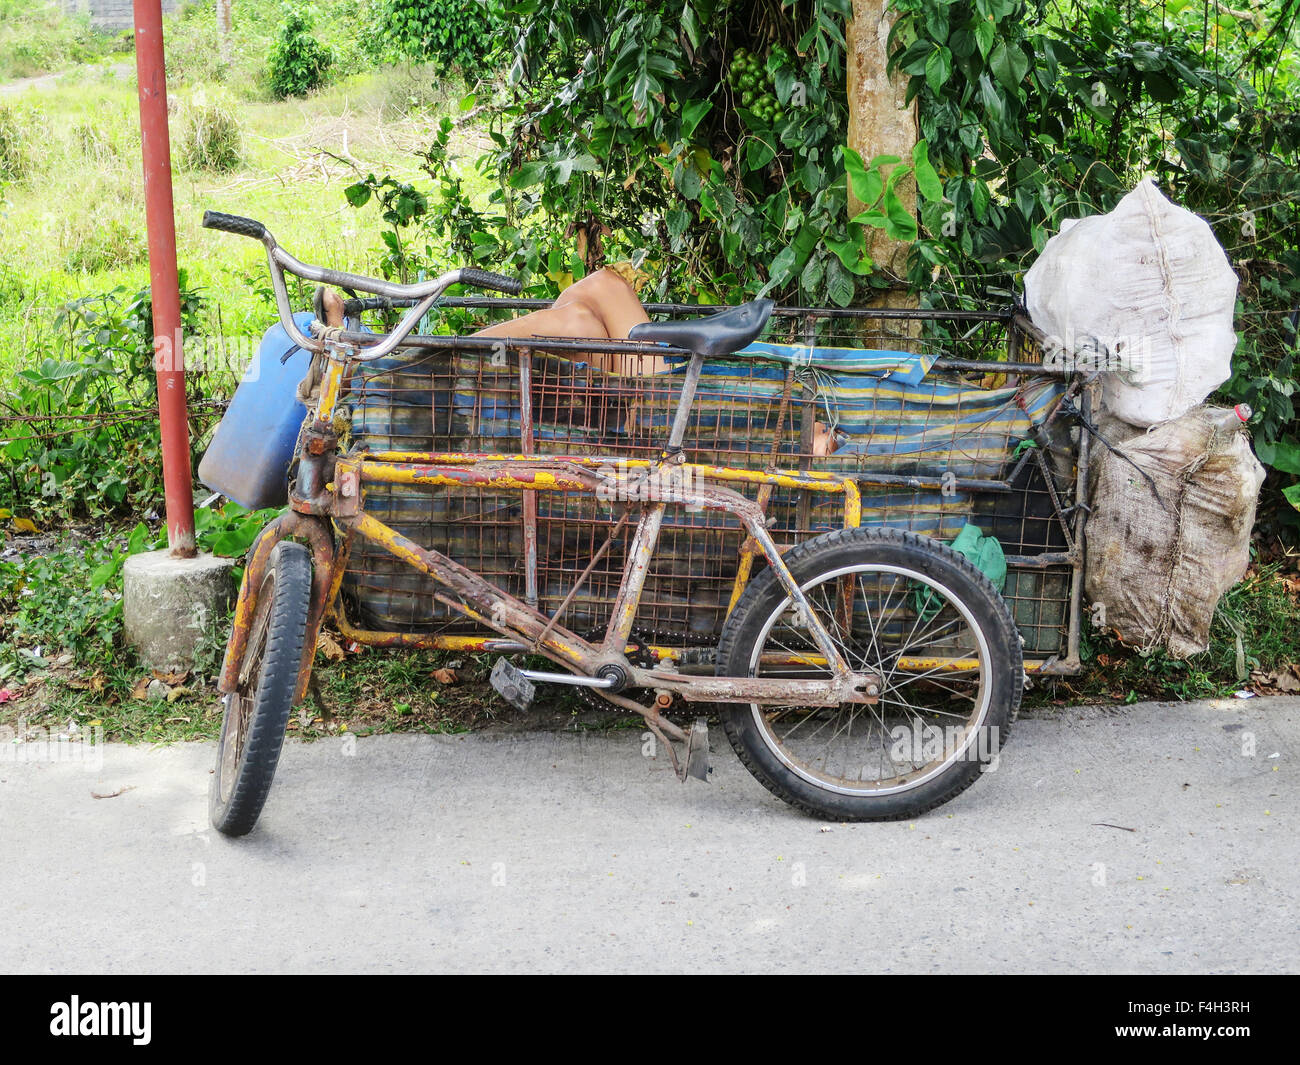 A Filipino man takes an afternoon siesta from his work collecting bottles inside the sidecar of his bicycle. - Stock Image